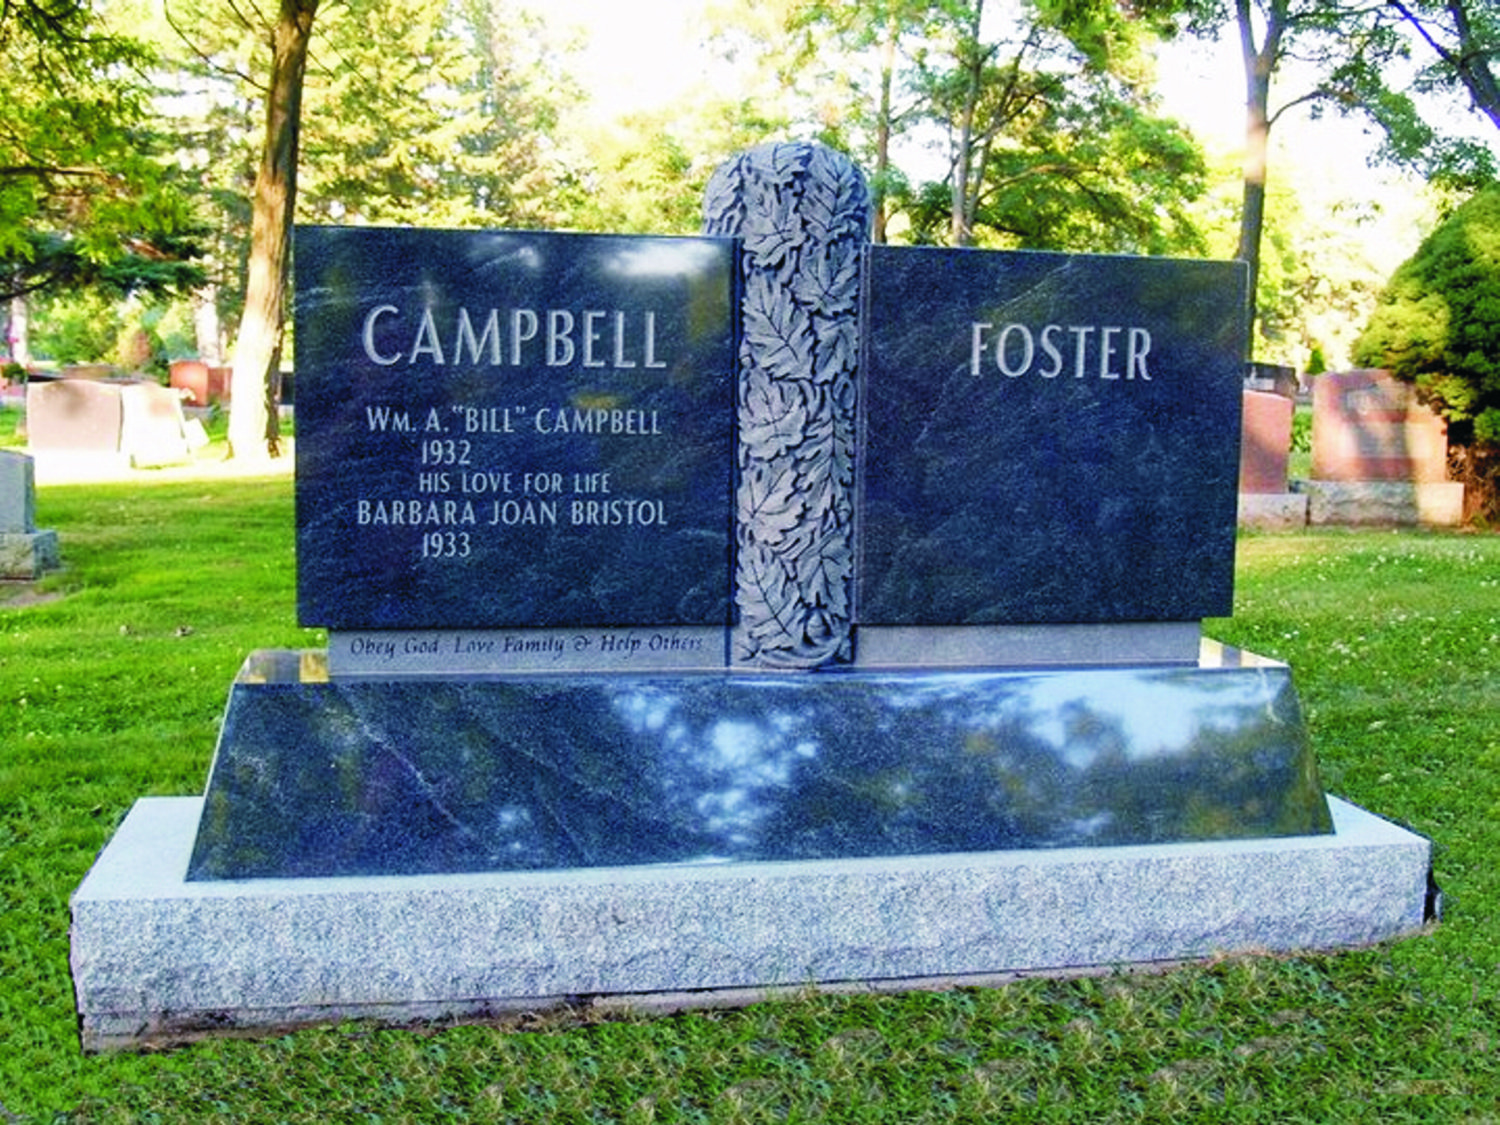 Campbell - Foster